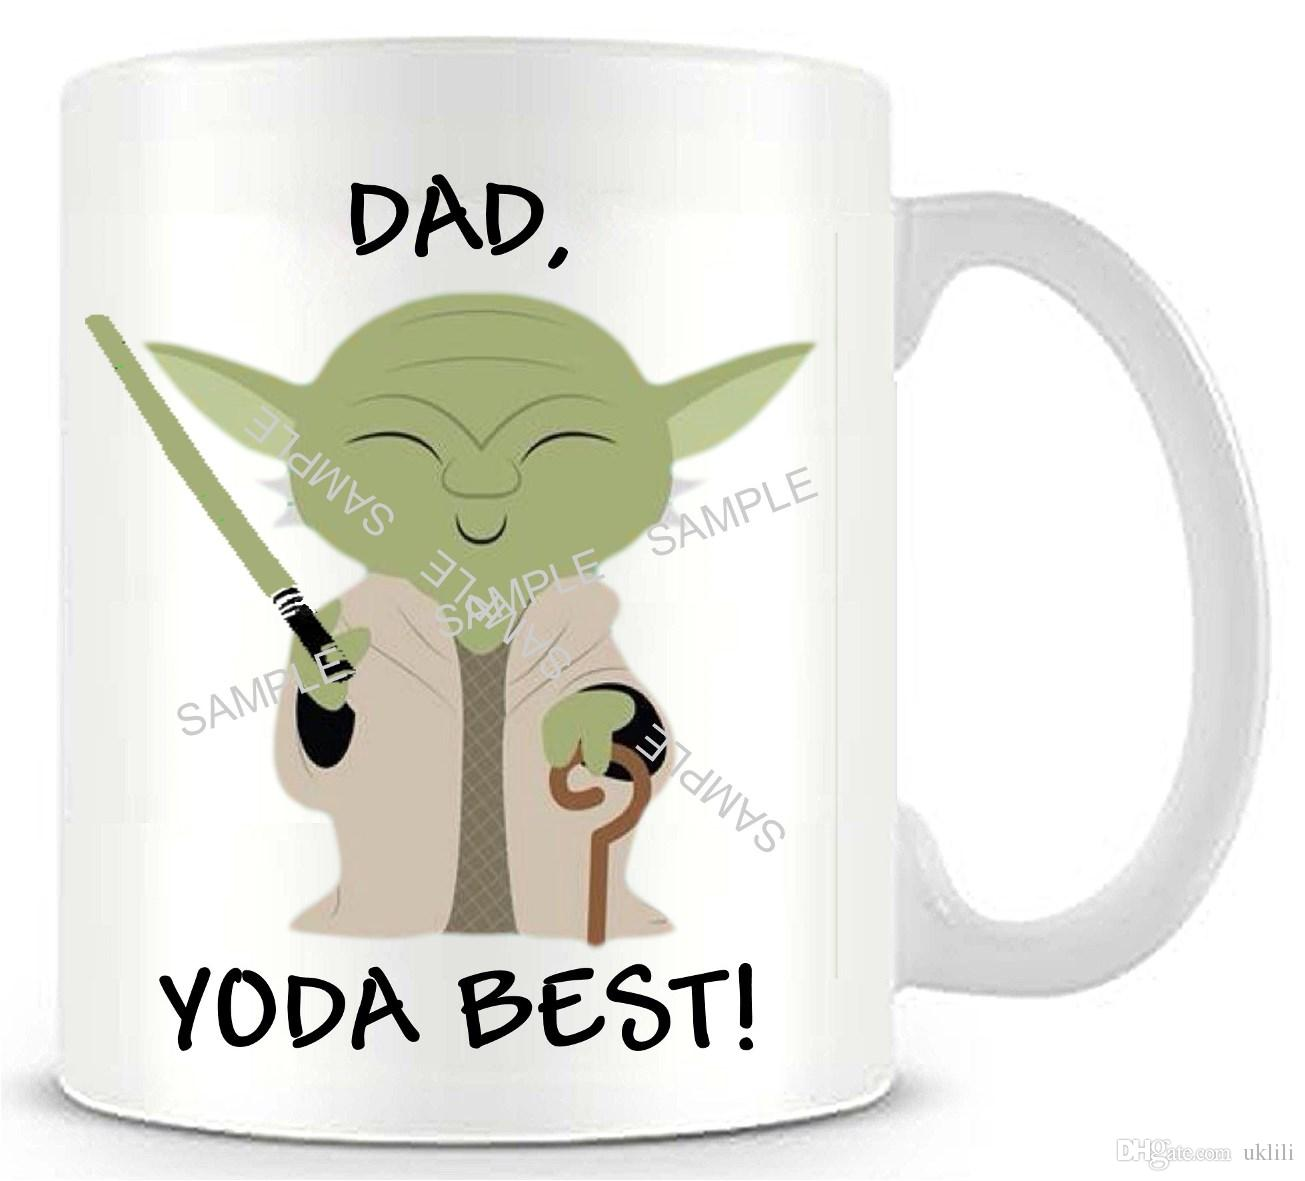 Coffee cups funny - Star Wars Yoda Best Ceramic White Coffee Mug Cup Funny Novelty Travel Personalized Mug Christmas Gifts Stacked Coffee Mugs Stacking Coffee Mugs From Uklili